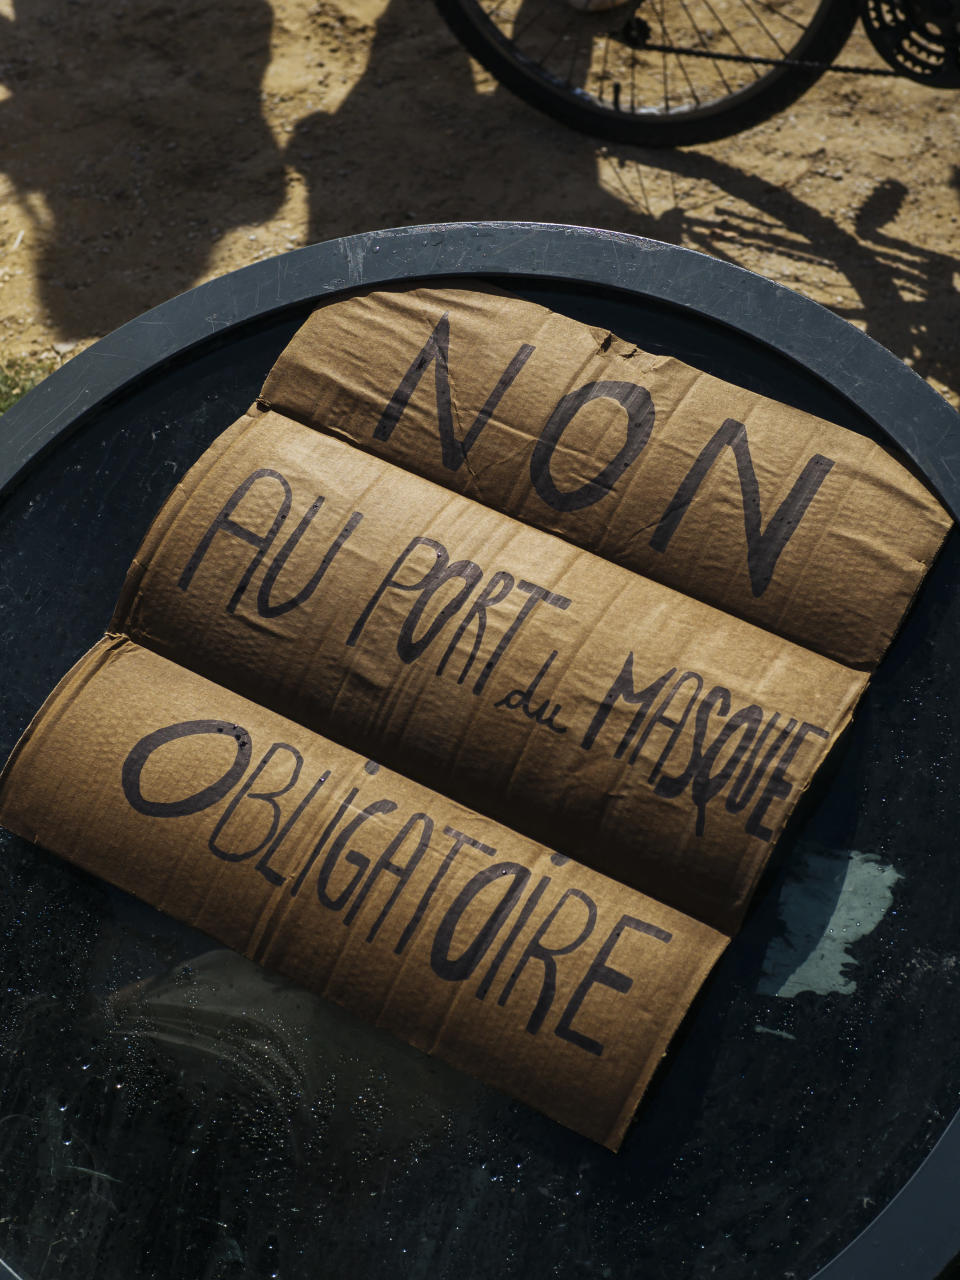 """A sign that reads: """"No to mandatory mask wearing"""", is seen on the ground during an anti-mask demonstration in Paris, Saturday, Aug. 29, 2020. A few hundred people rallied Saturday at the Place de la Nation in eastern Paris to protest new mask rules and other restrictions prompted by rising virus infections around France. (AP Photo/Kamil Zihnioglu)"""